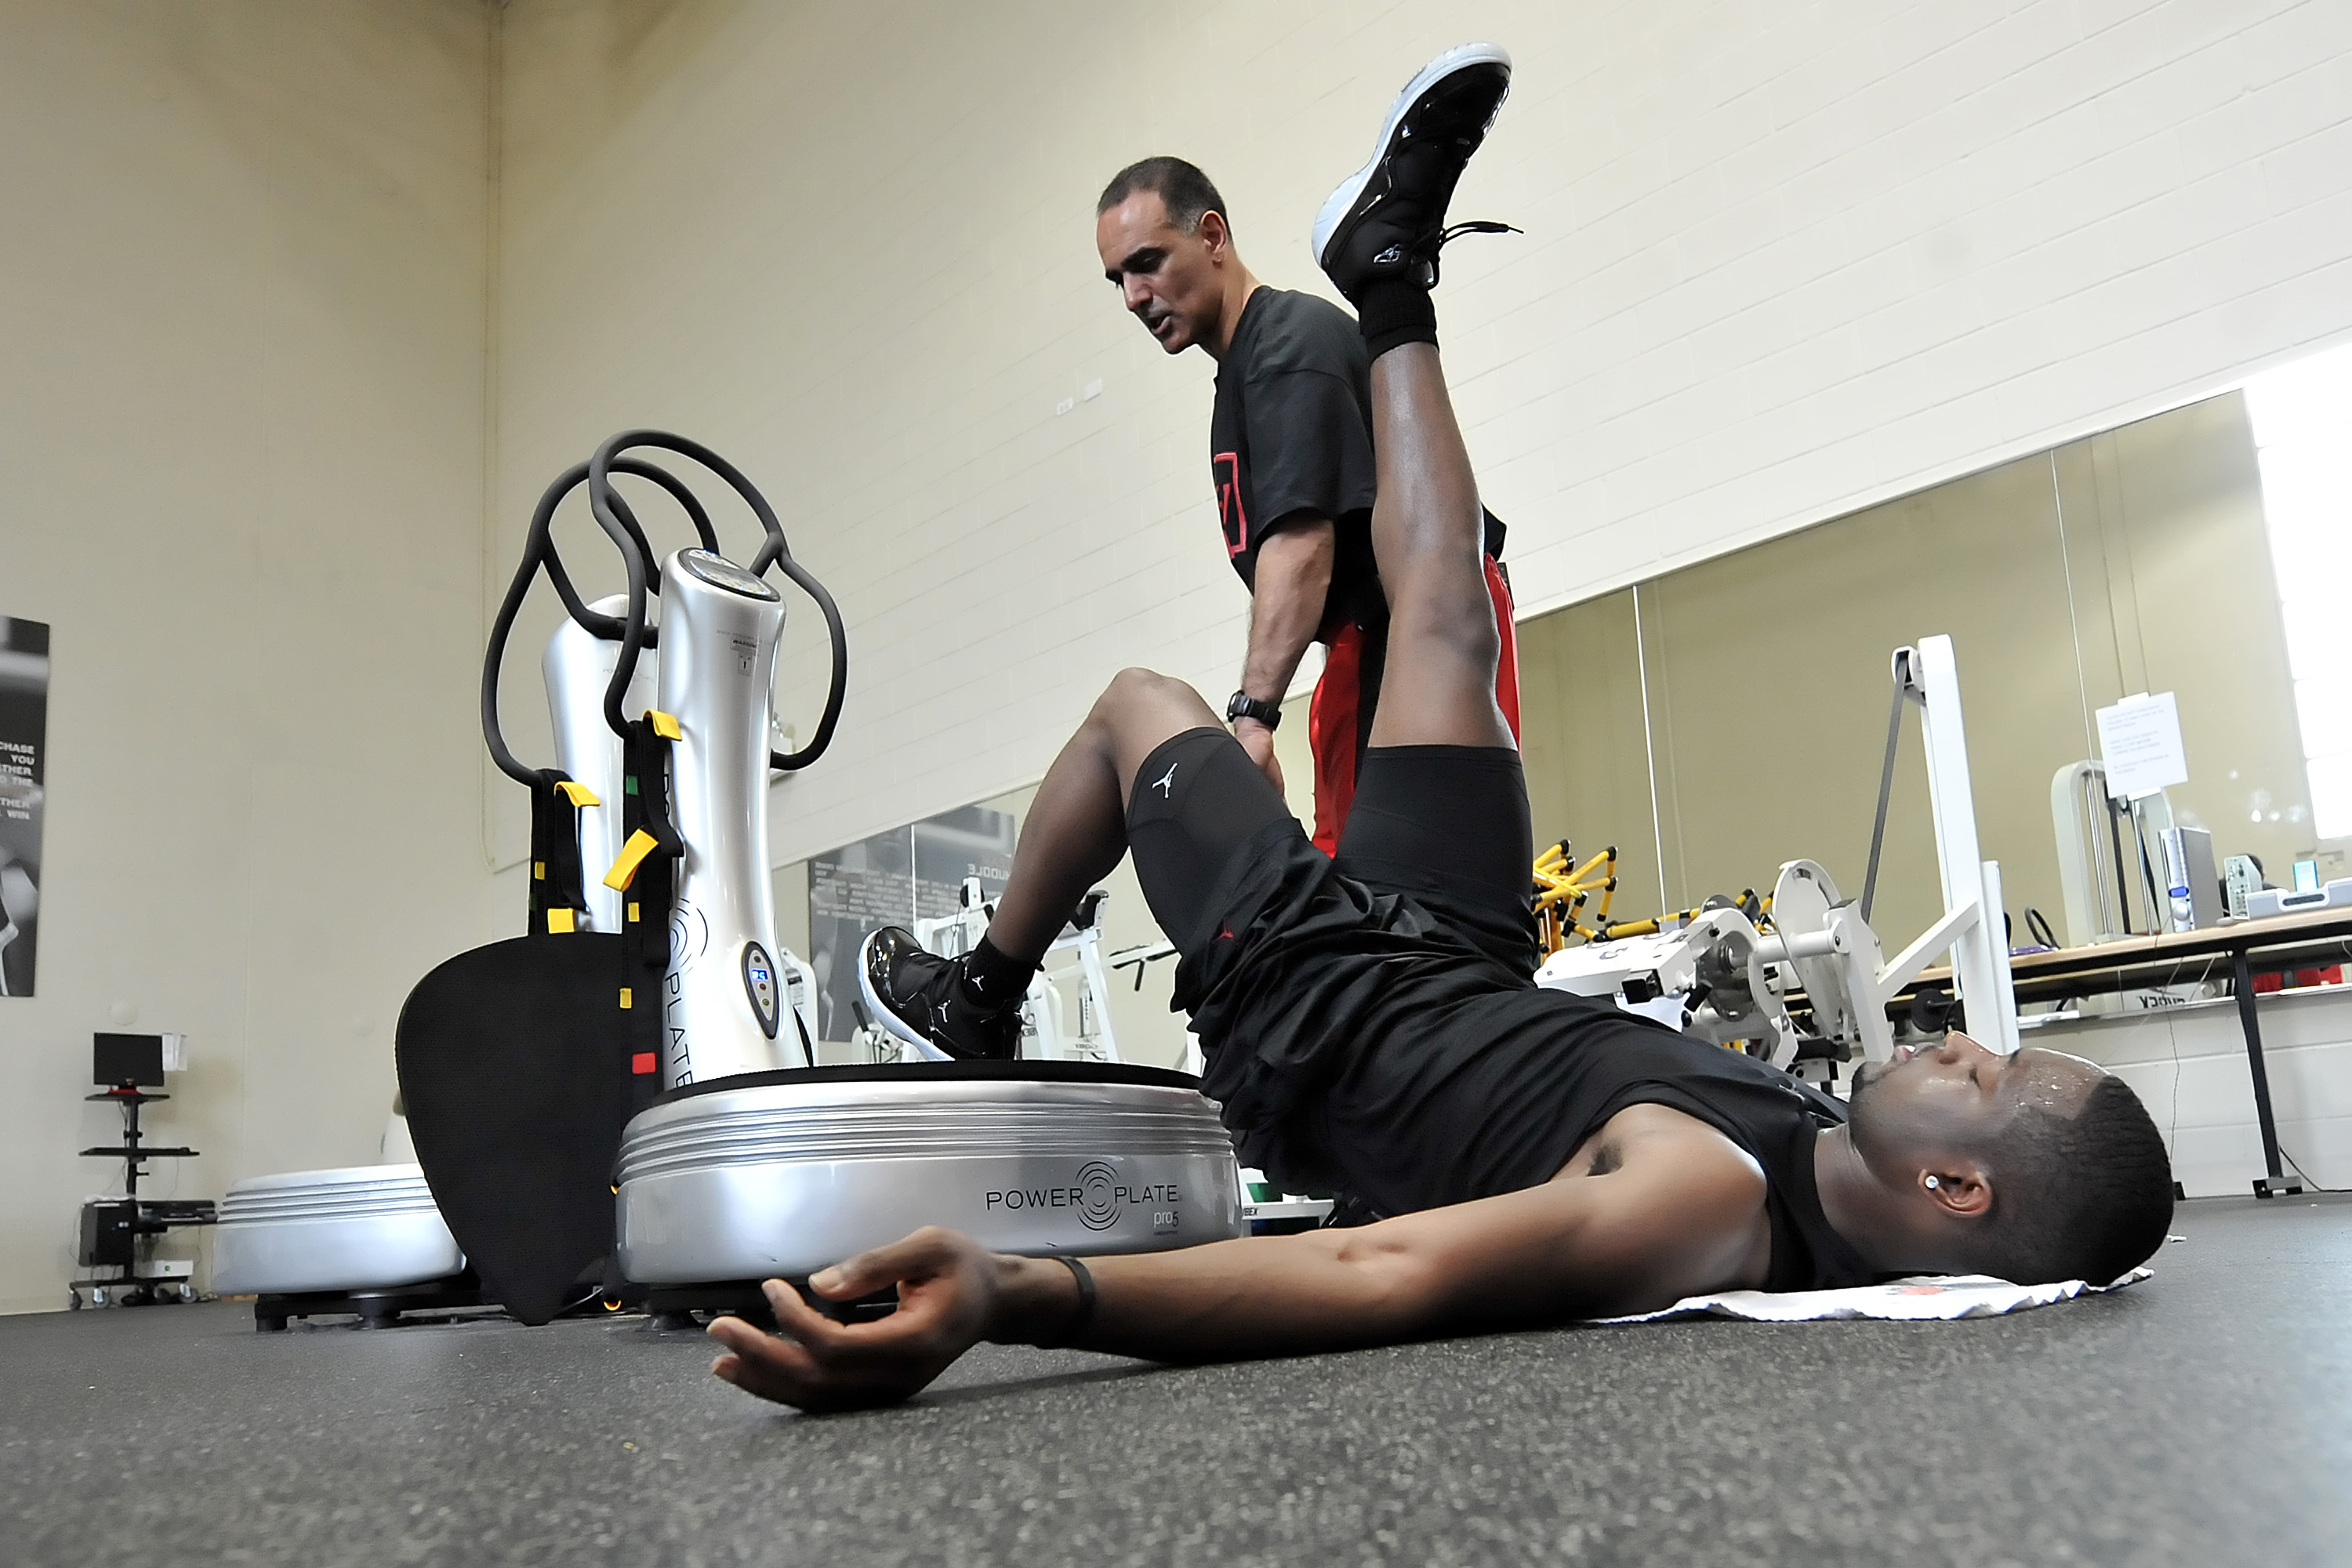 CHICAGO - SEPTEMBER 8: Dwyane Wade (R) of the Miami Heat uses a Power Plate machine help from Tim Grover, sports performance enhancement specialist and ATTACK Athletics owner, during his workout on September 8, 2009 at ATTACK Athletics in Chicago, Illinois. NOTE TO USER: User expressly acknowledges and agrees that, by downloading and/or using this photograph, user is consenting to the terms and conditions of the Getty Images License Agreement. Mandatory Copyright Notice: Copyright 2009 NBAE (Photo by Randy Belice/NBAE via Getty Images)